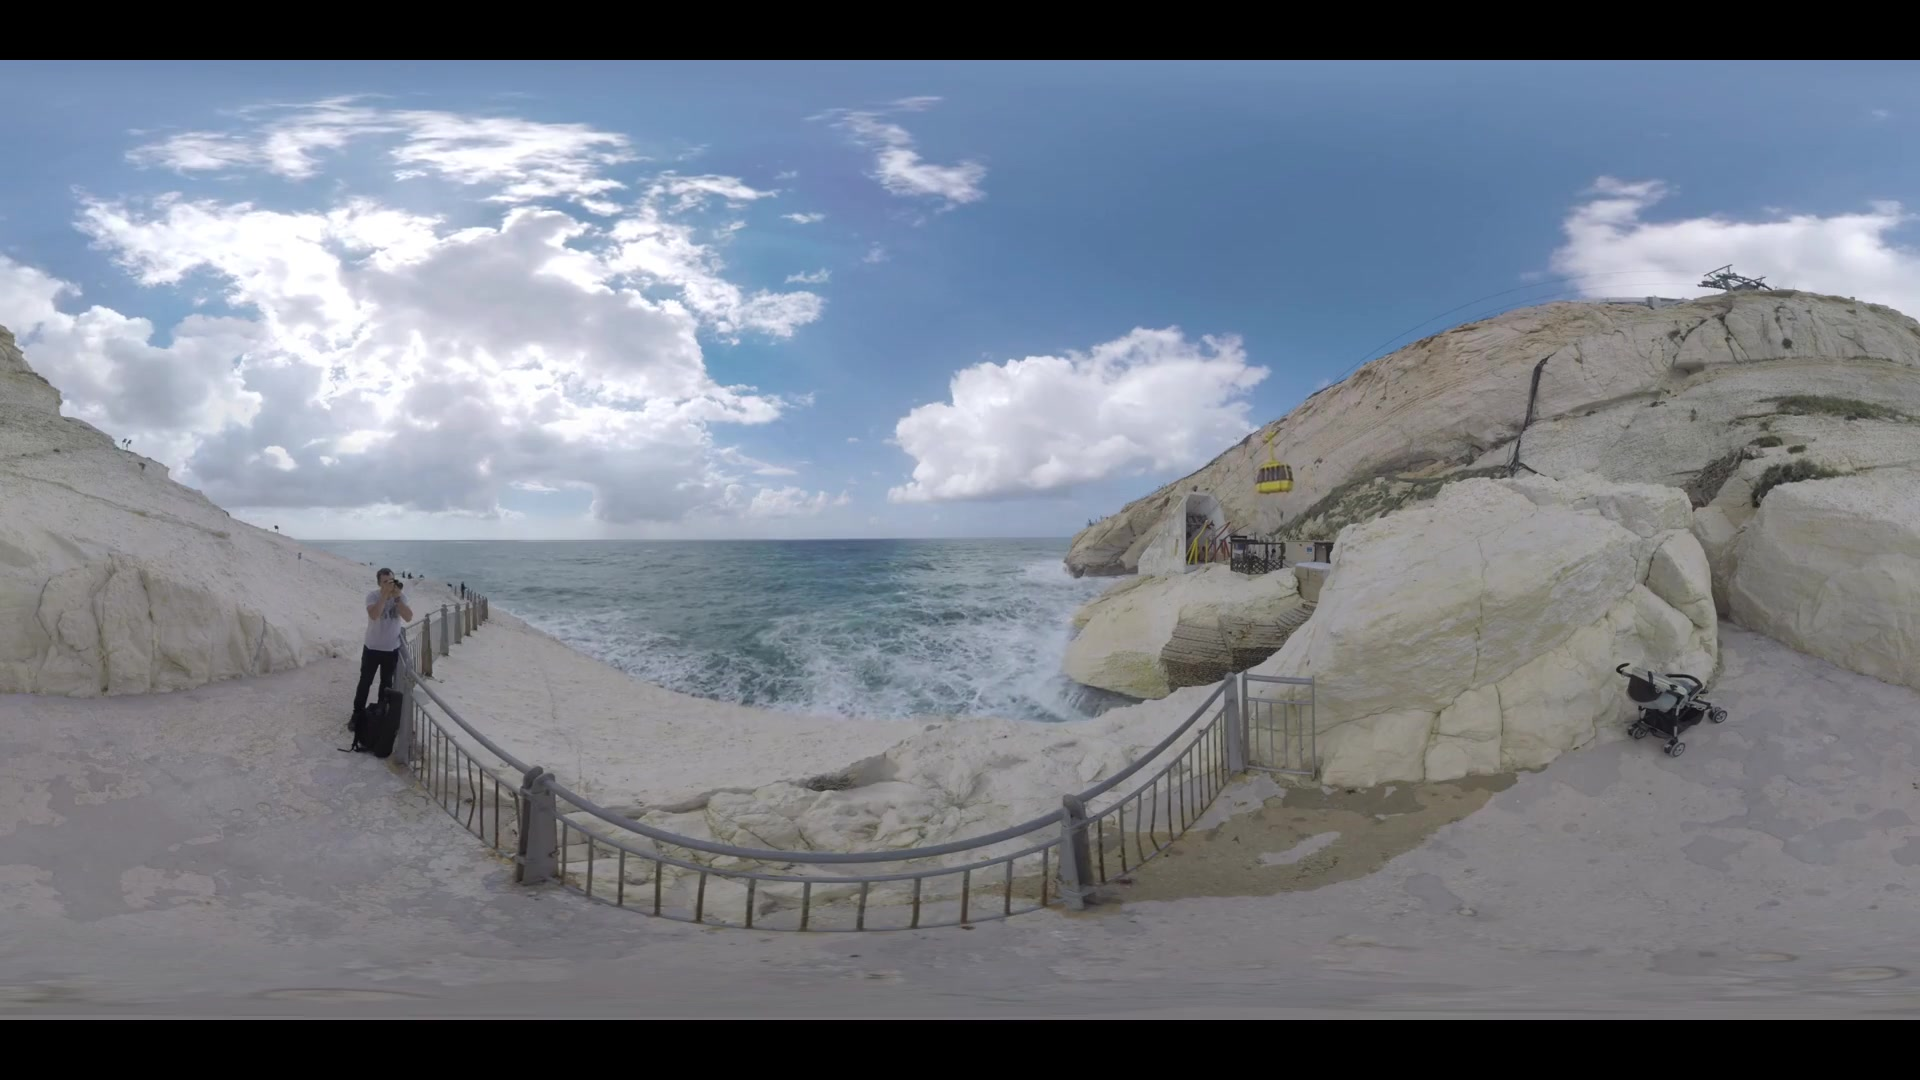 ROSH HANIKRA, ISRAEL - MARCH 12, 2017: 360 VR video. White chalk cliff meeting sea. Rosh HaNikra landscape with the steepest in the world cable car. Man tourist (with model release) taking shots of nature scene